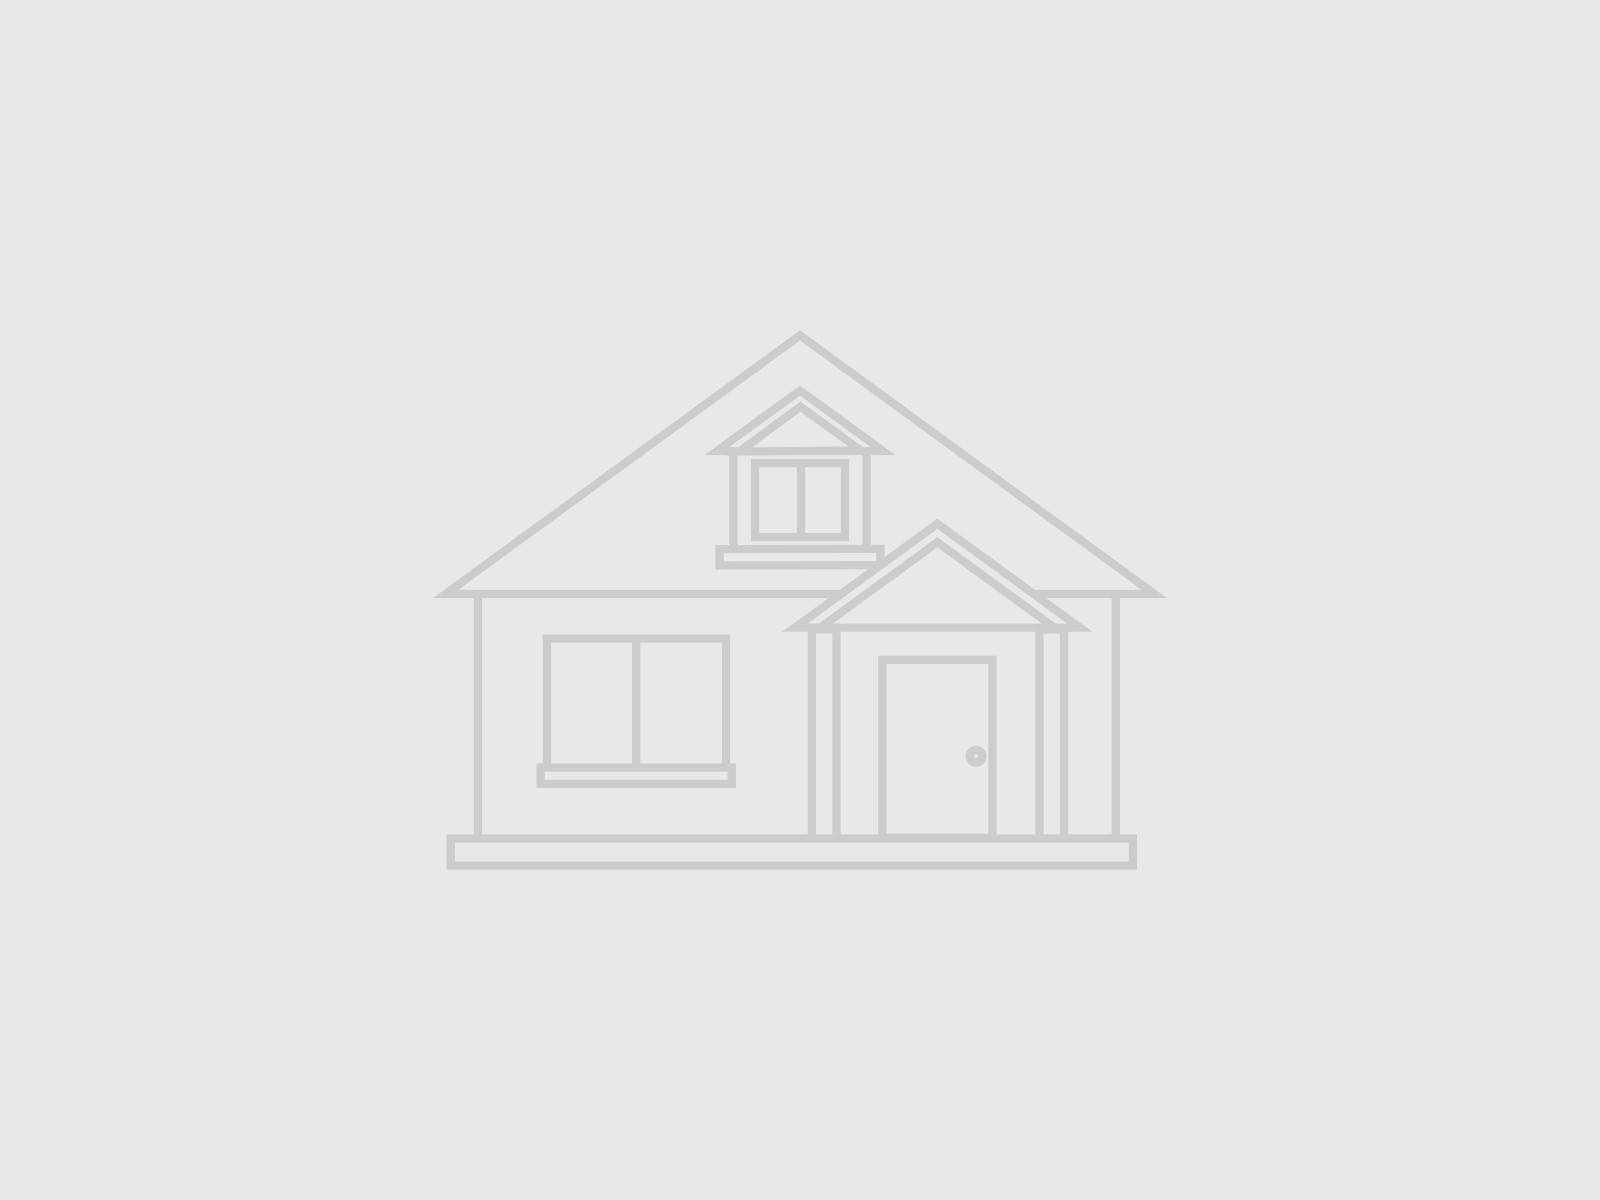 Single Family Homes at 828 Seacliff Drive Aptos, California 95003 United States